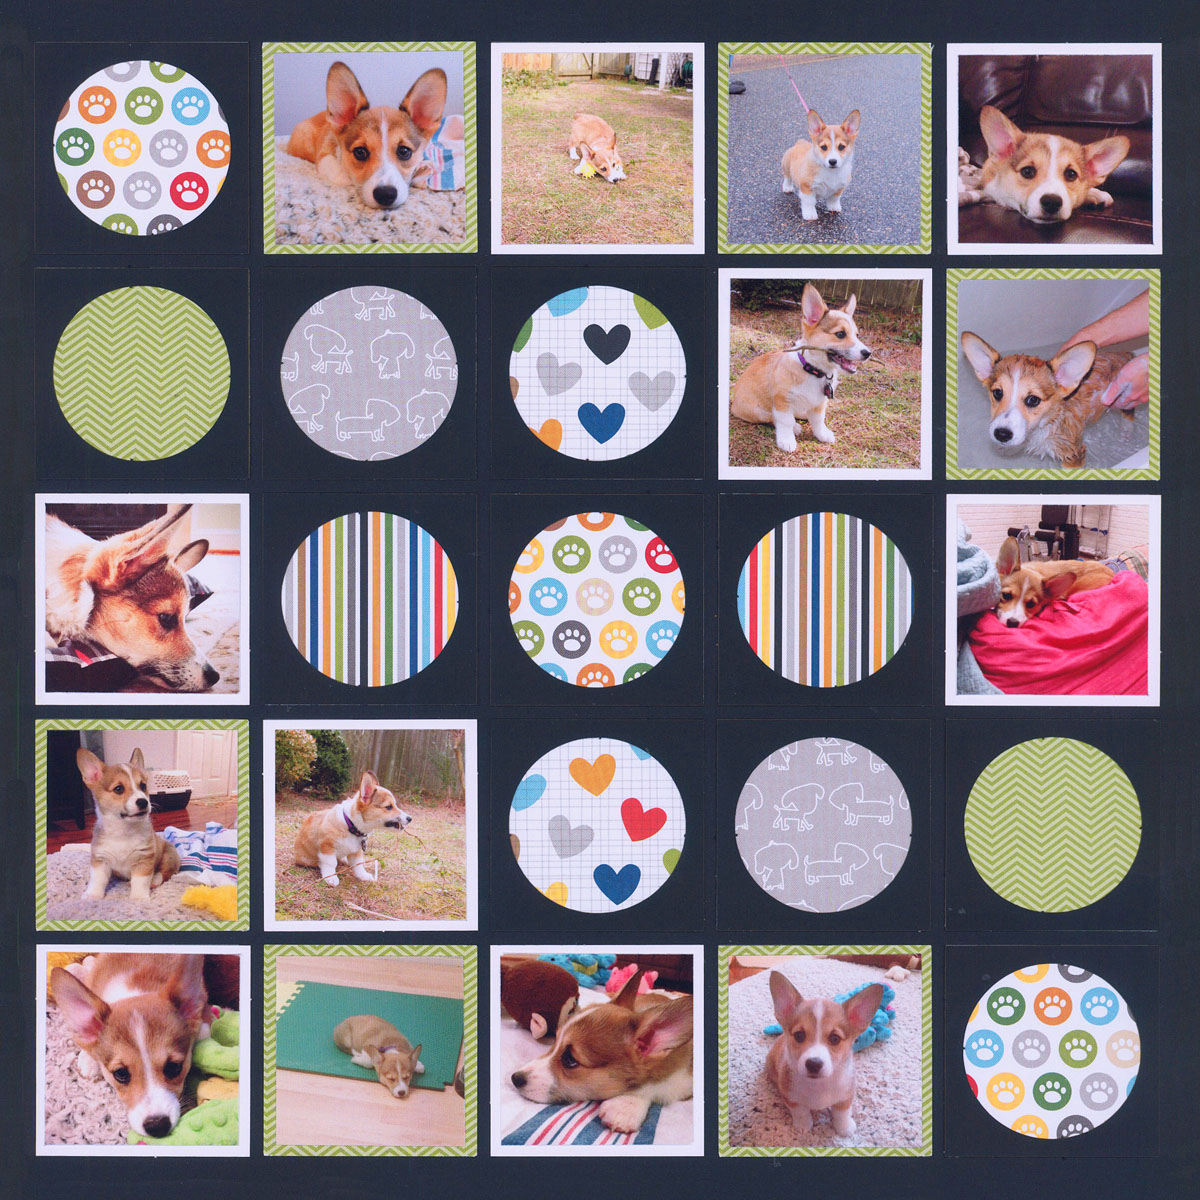 Scrapbook Layout Idea - Use Circle Tiles